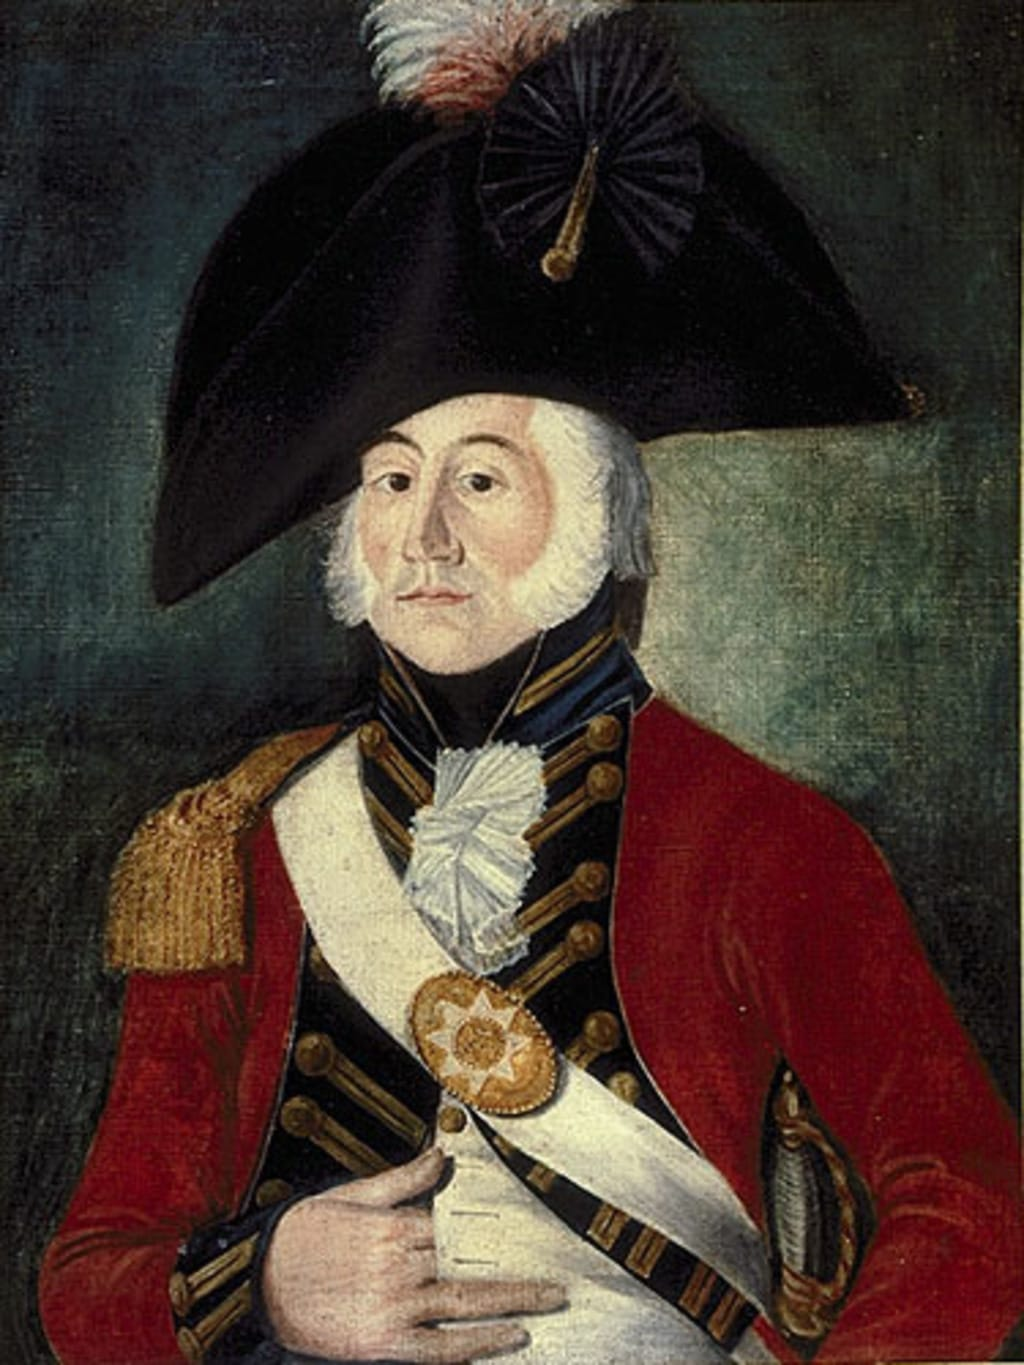 Le Capitaine François Malhiot